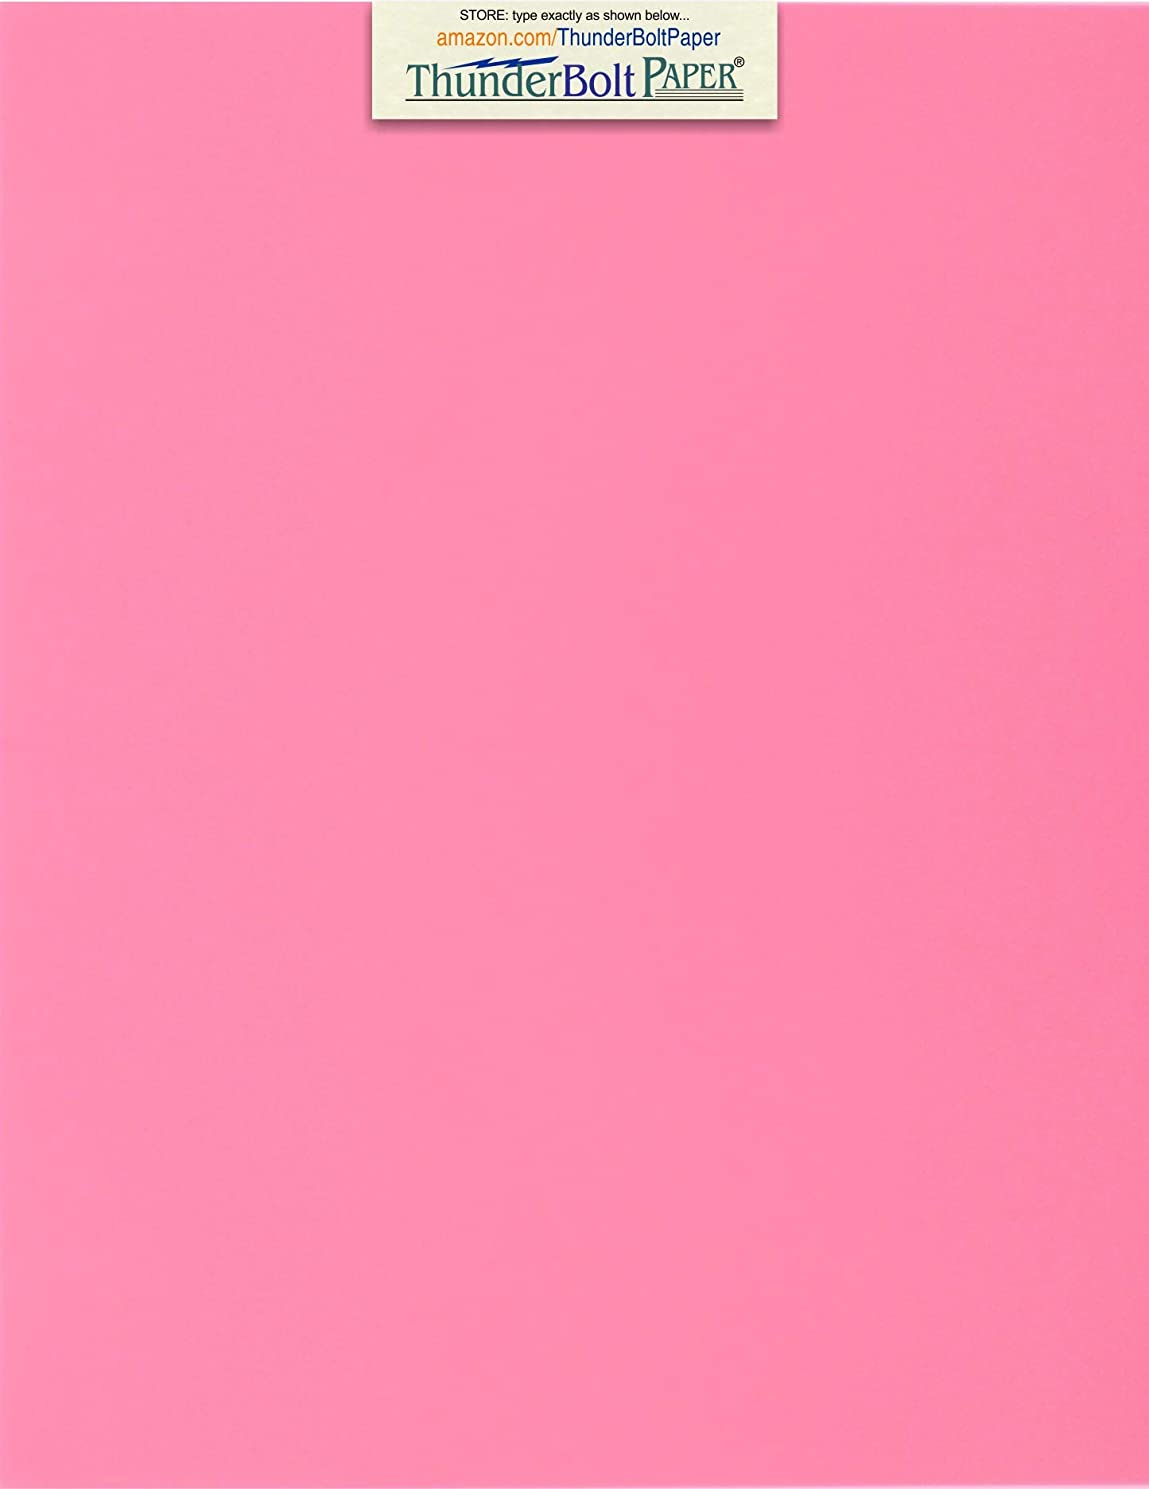 100 Bright Pink 65lb Cover|Card Paper - 8.5 X 11 Inches Standard Letter|Flyer Size - 65 lb/Pound Light Weight Cardstock - Quality Printable Smooth Surface for Bright Colorful Results